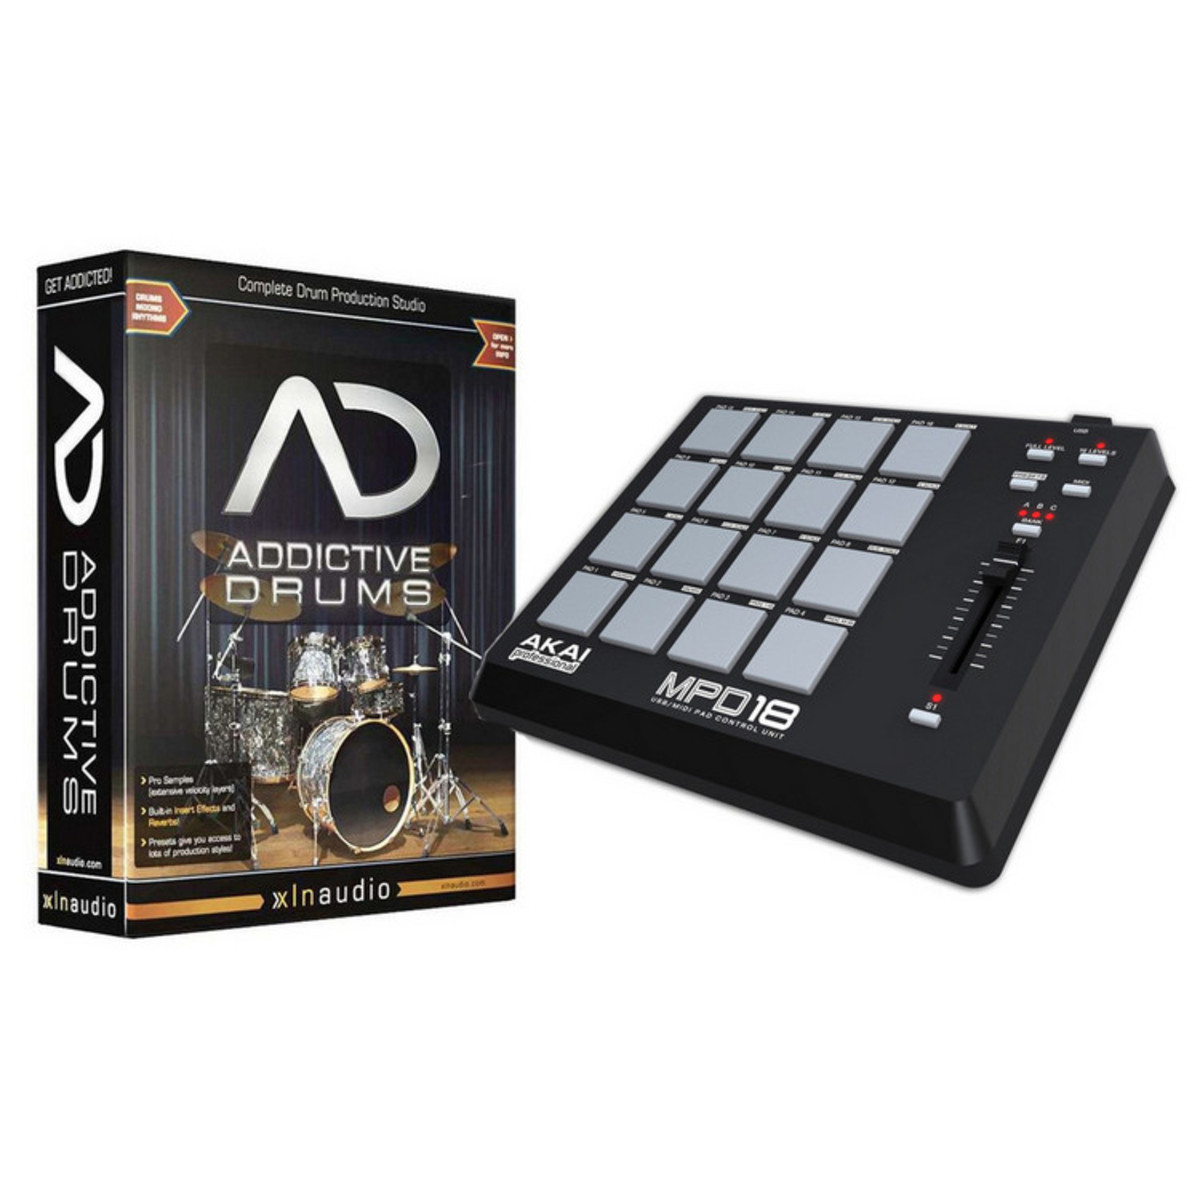 DISC XLN Addictive Drums and Akai MPD18 Pad Controller Bundle